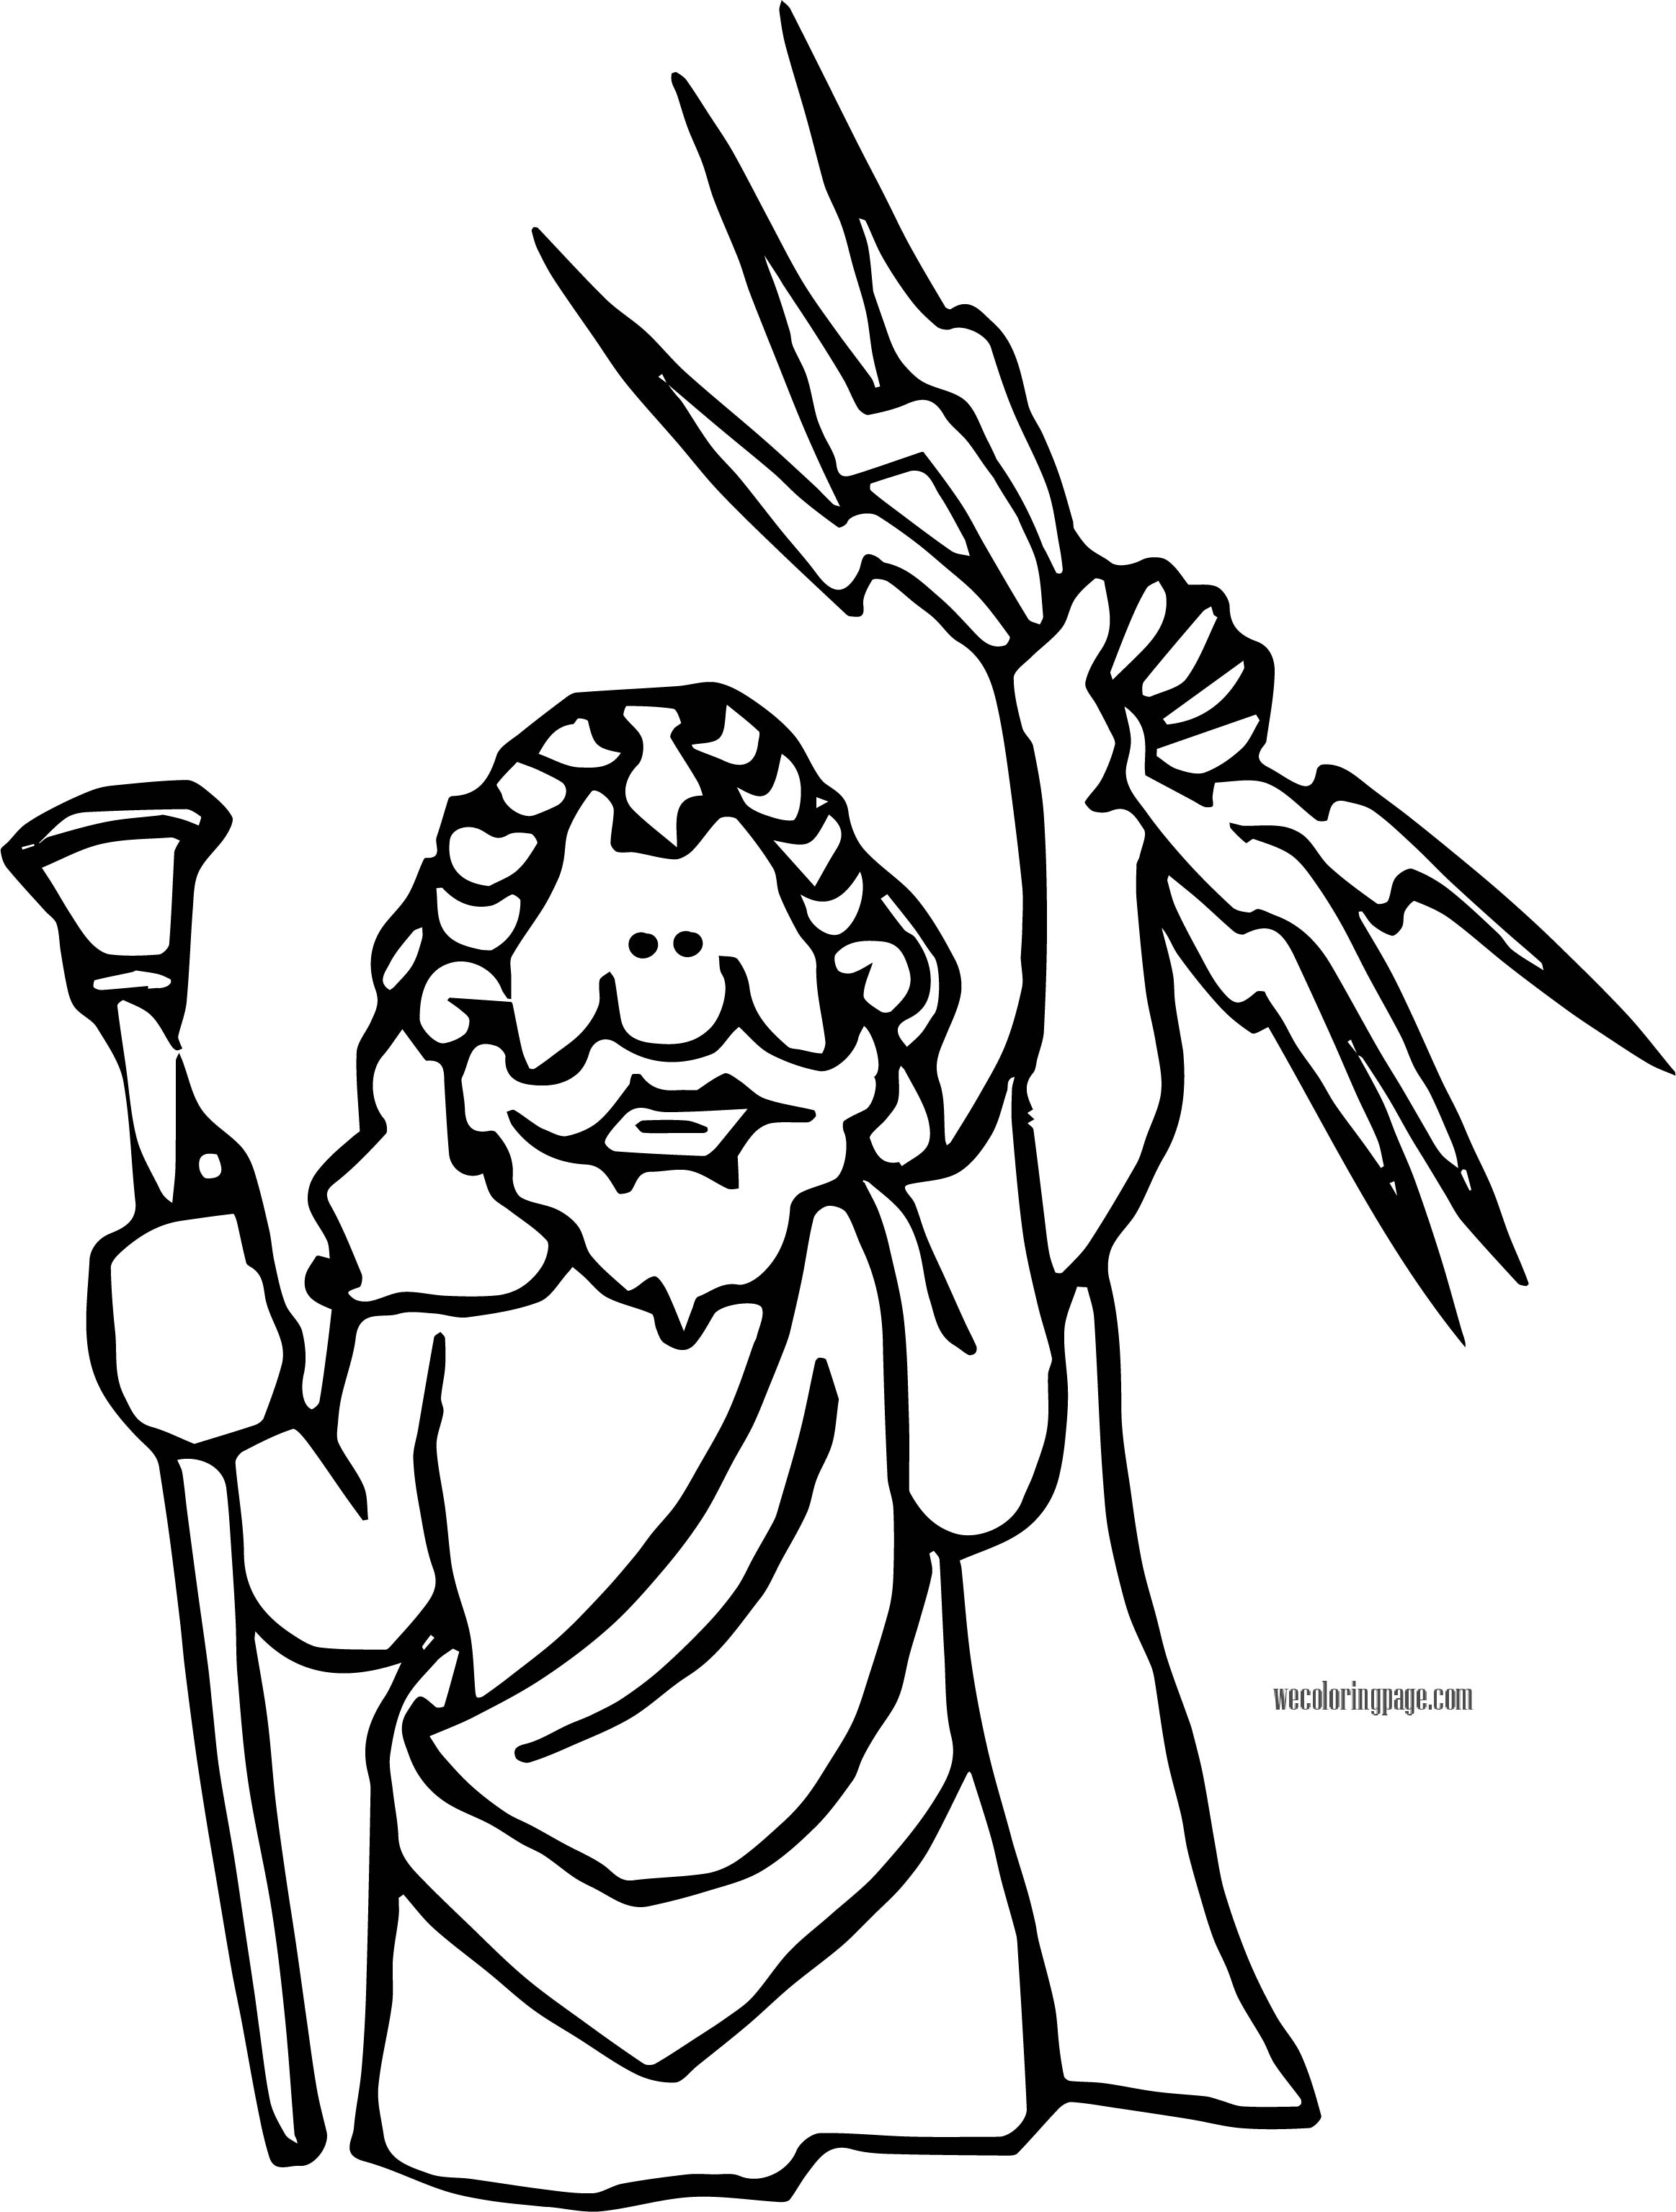 Jupiter Zeus Coloring Page | Wecoloringpage